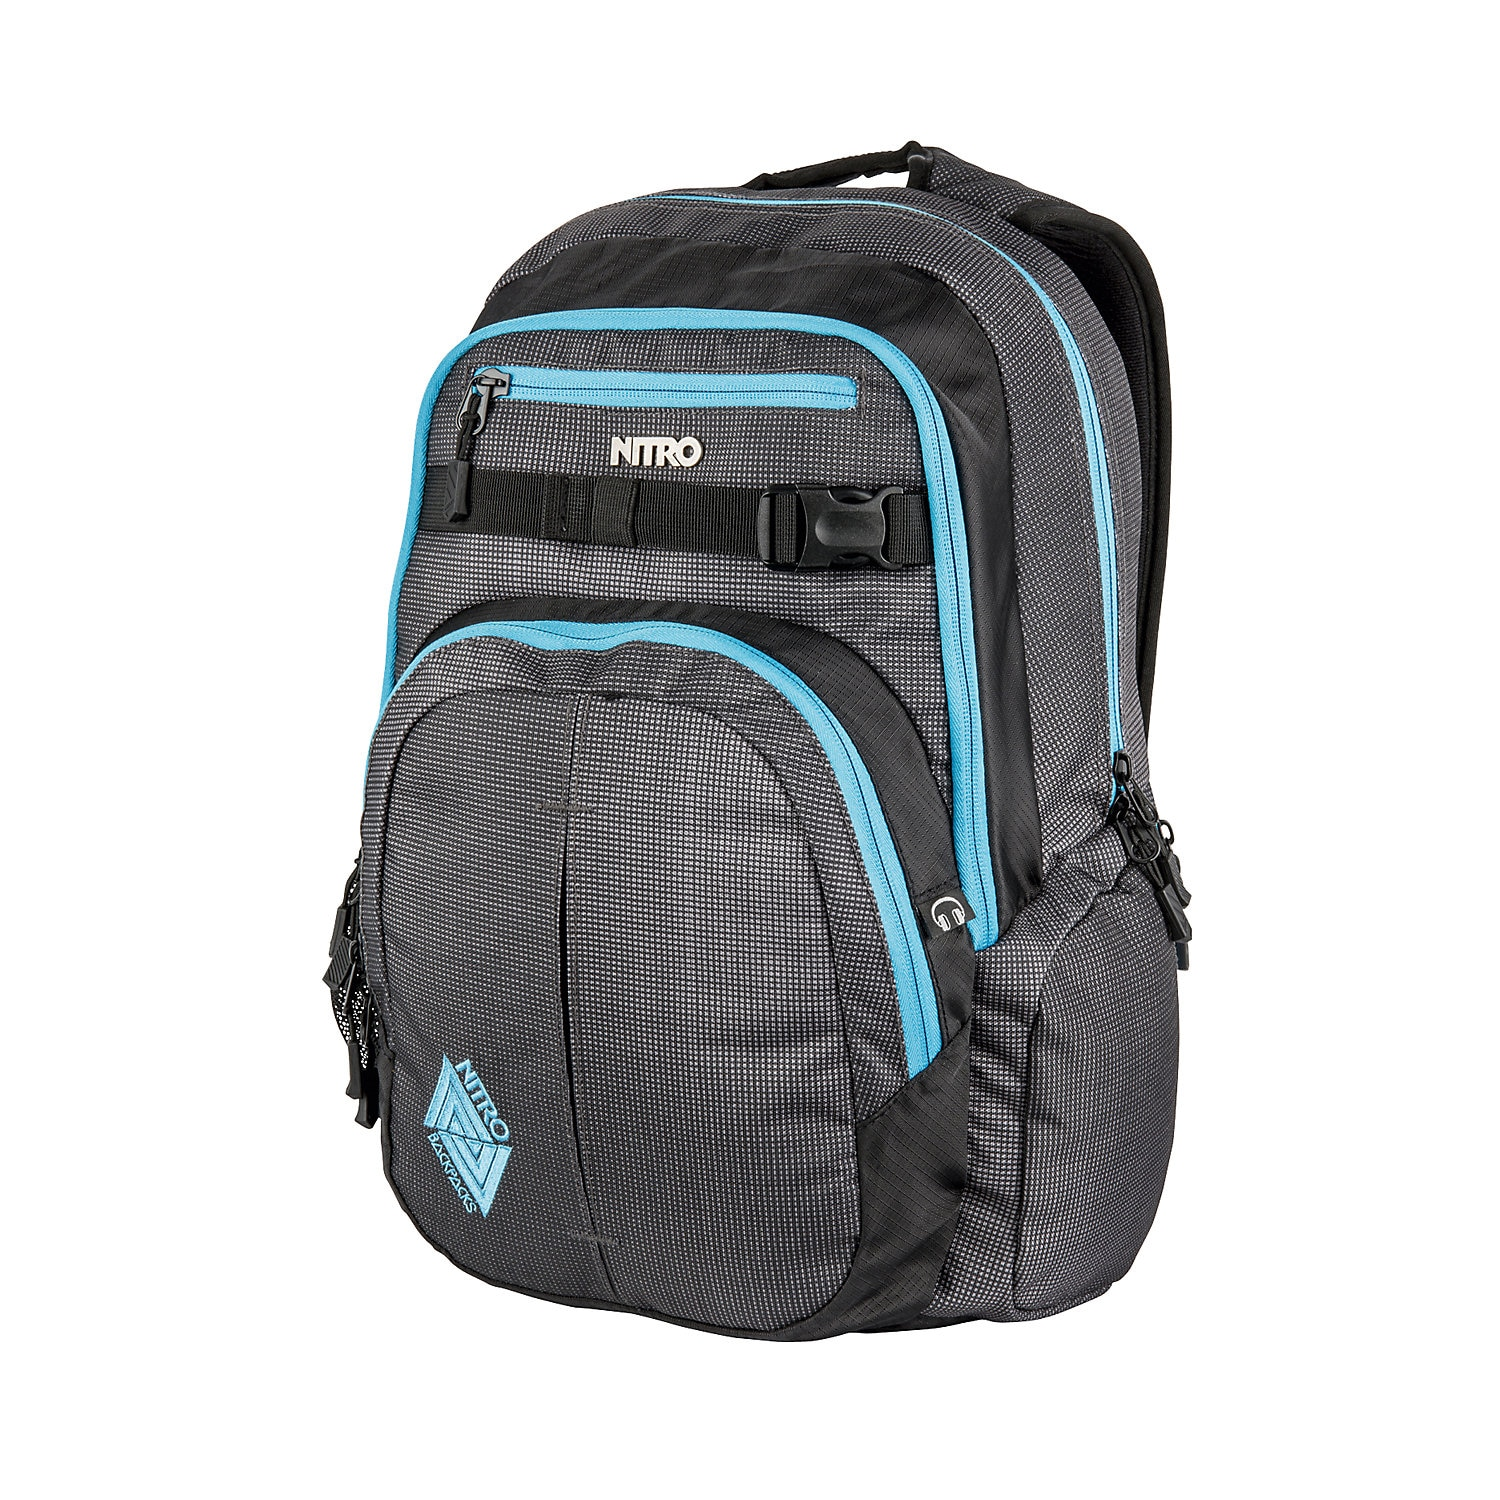 "Nitro Rucksack Chase 17"" L Daypack Collection 35 l"